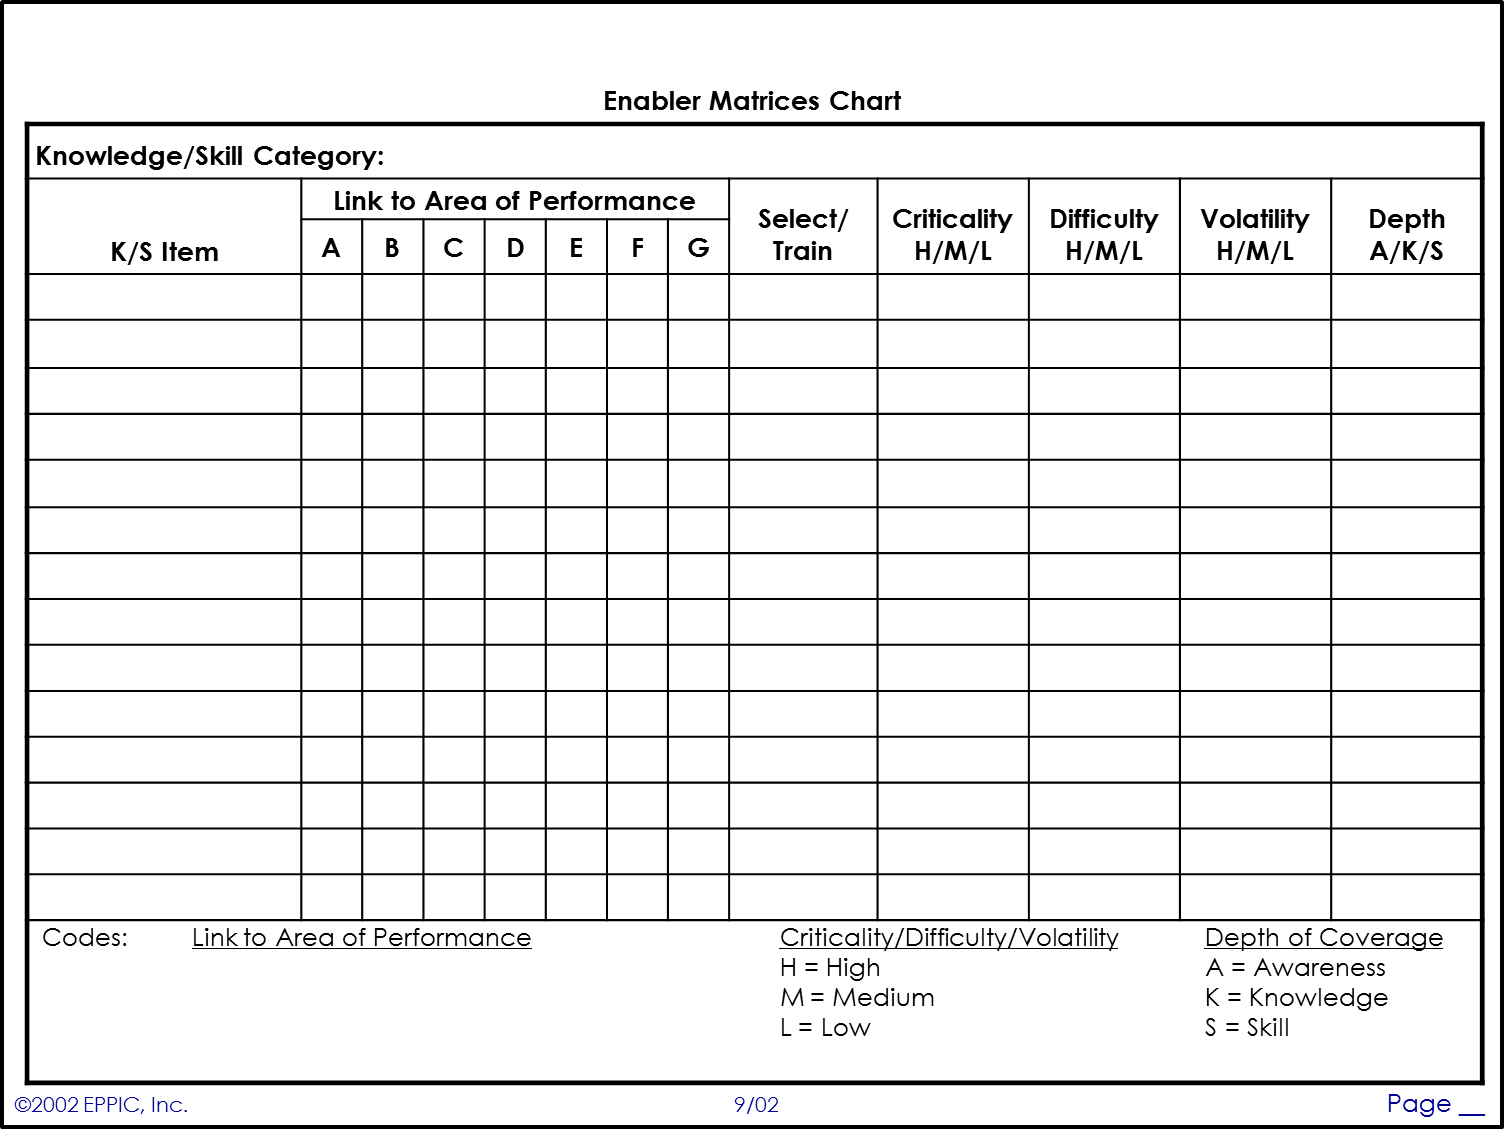 Blank Enabler Matrices Chart Eppic